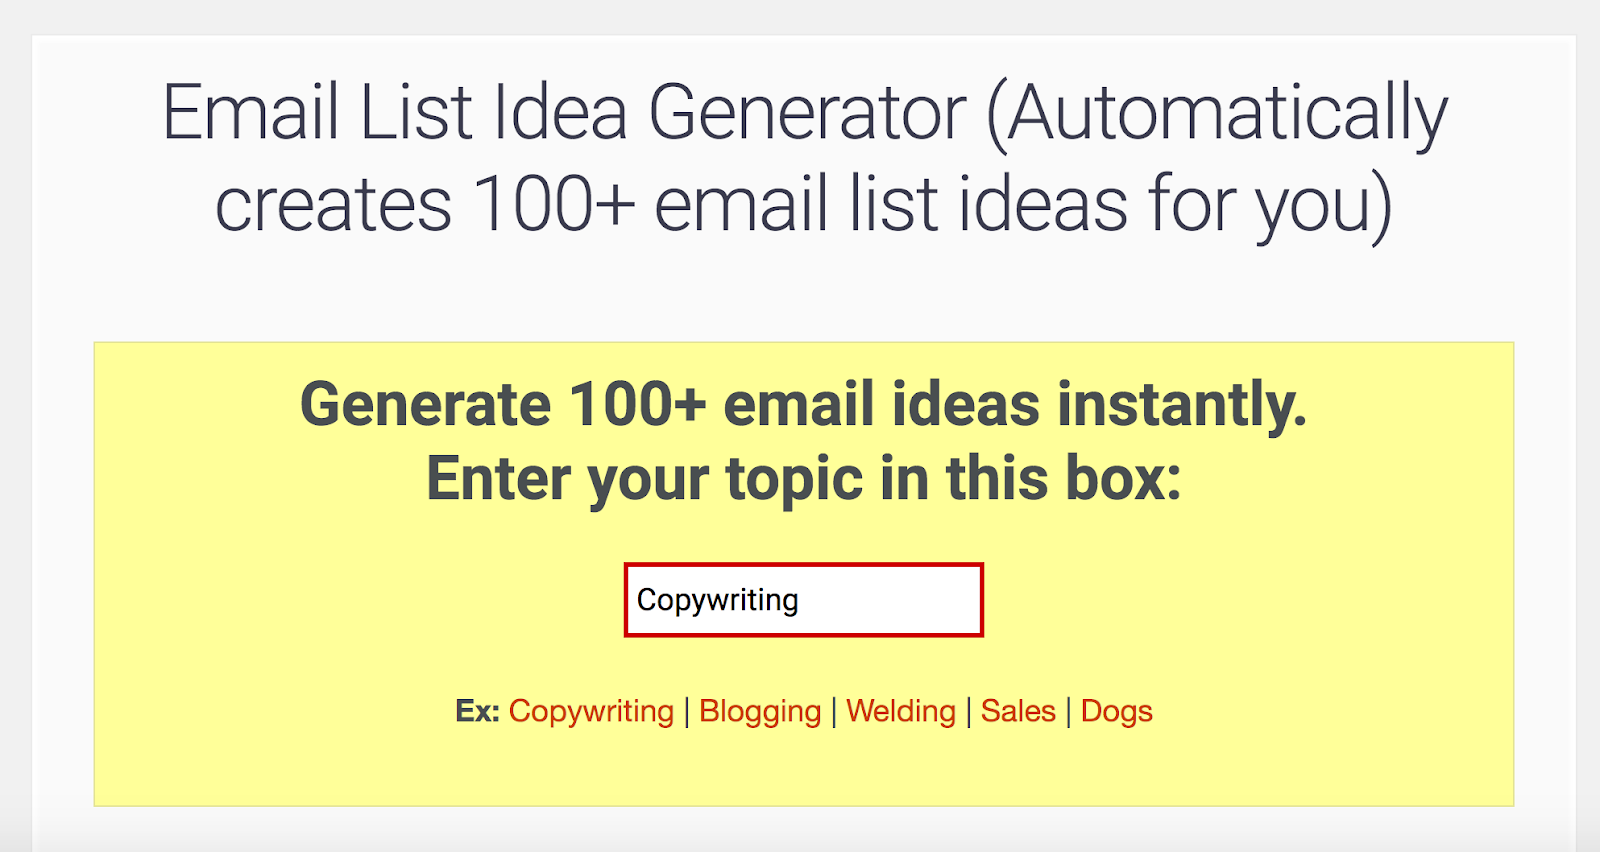 EXAMPLE #2: EMAIL LIST GENERATOR BY KOPYWRITING KOURSE